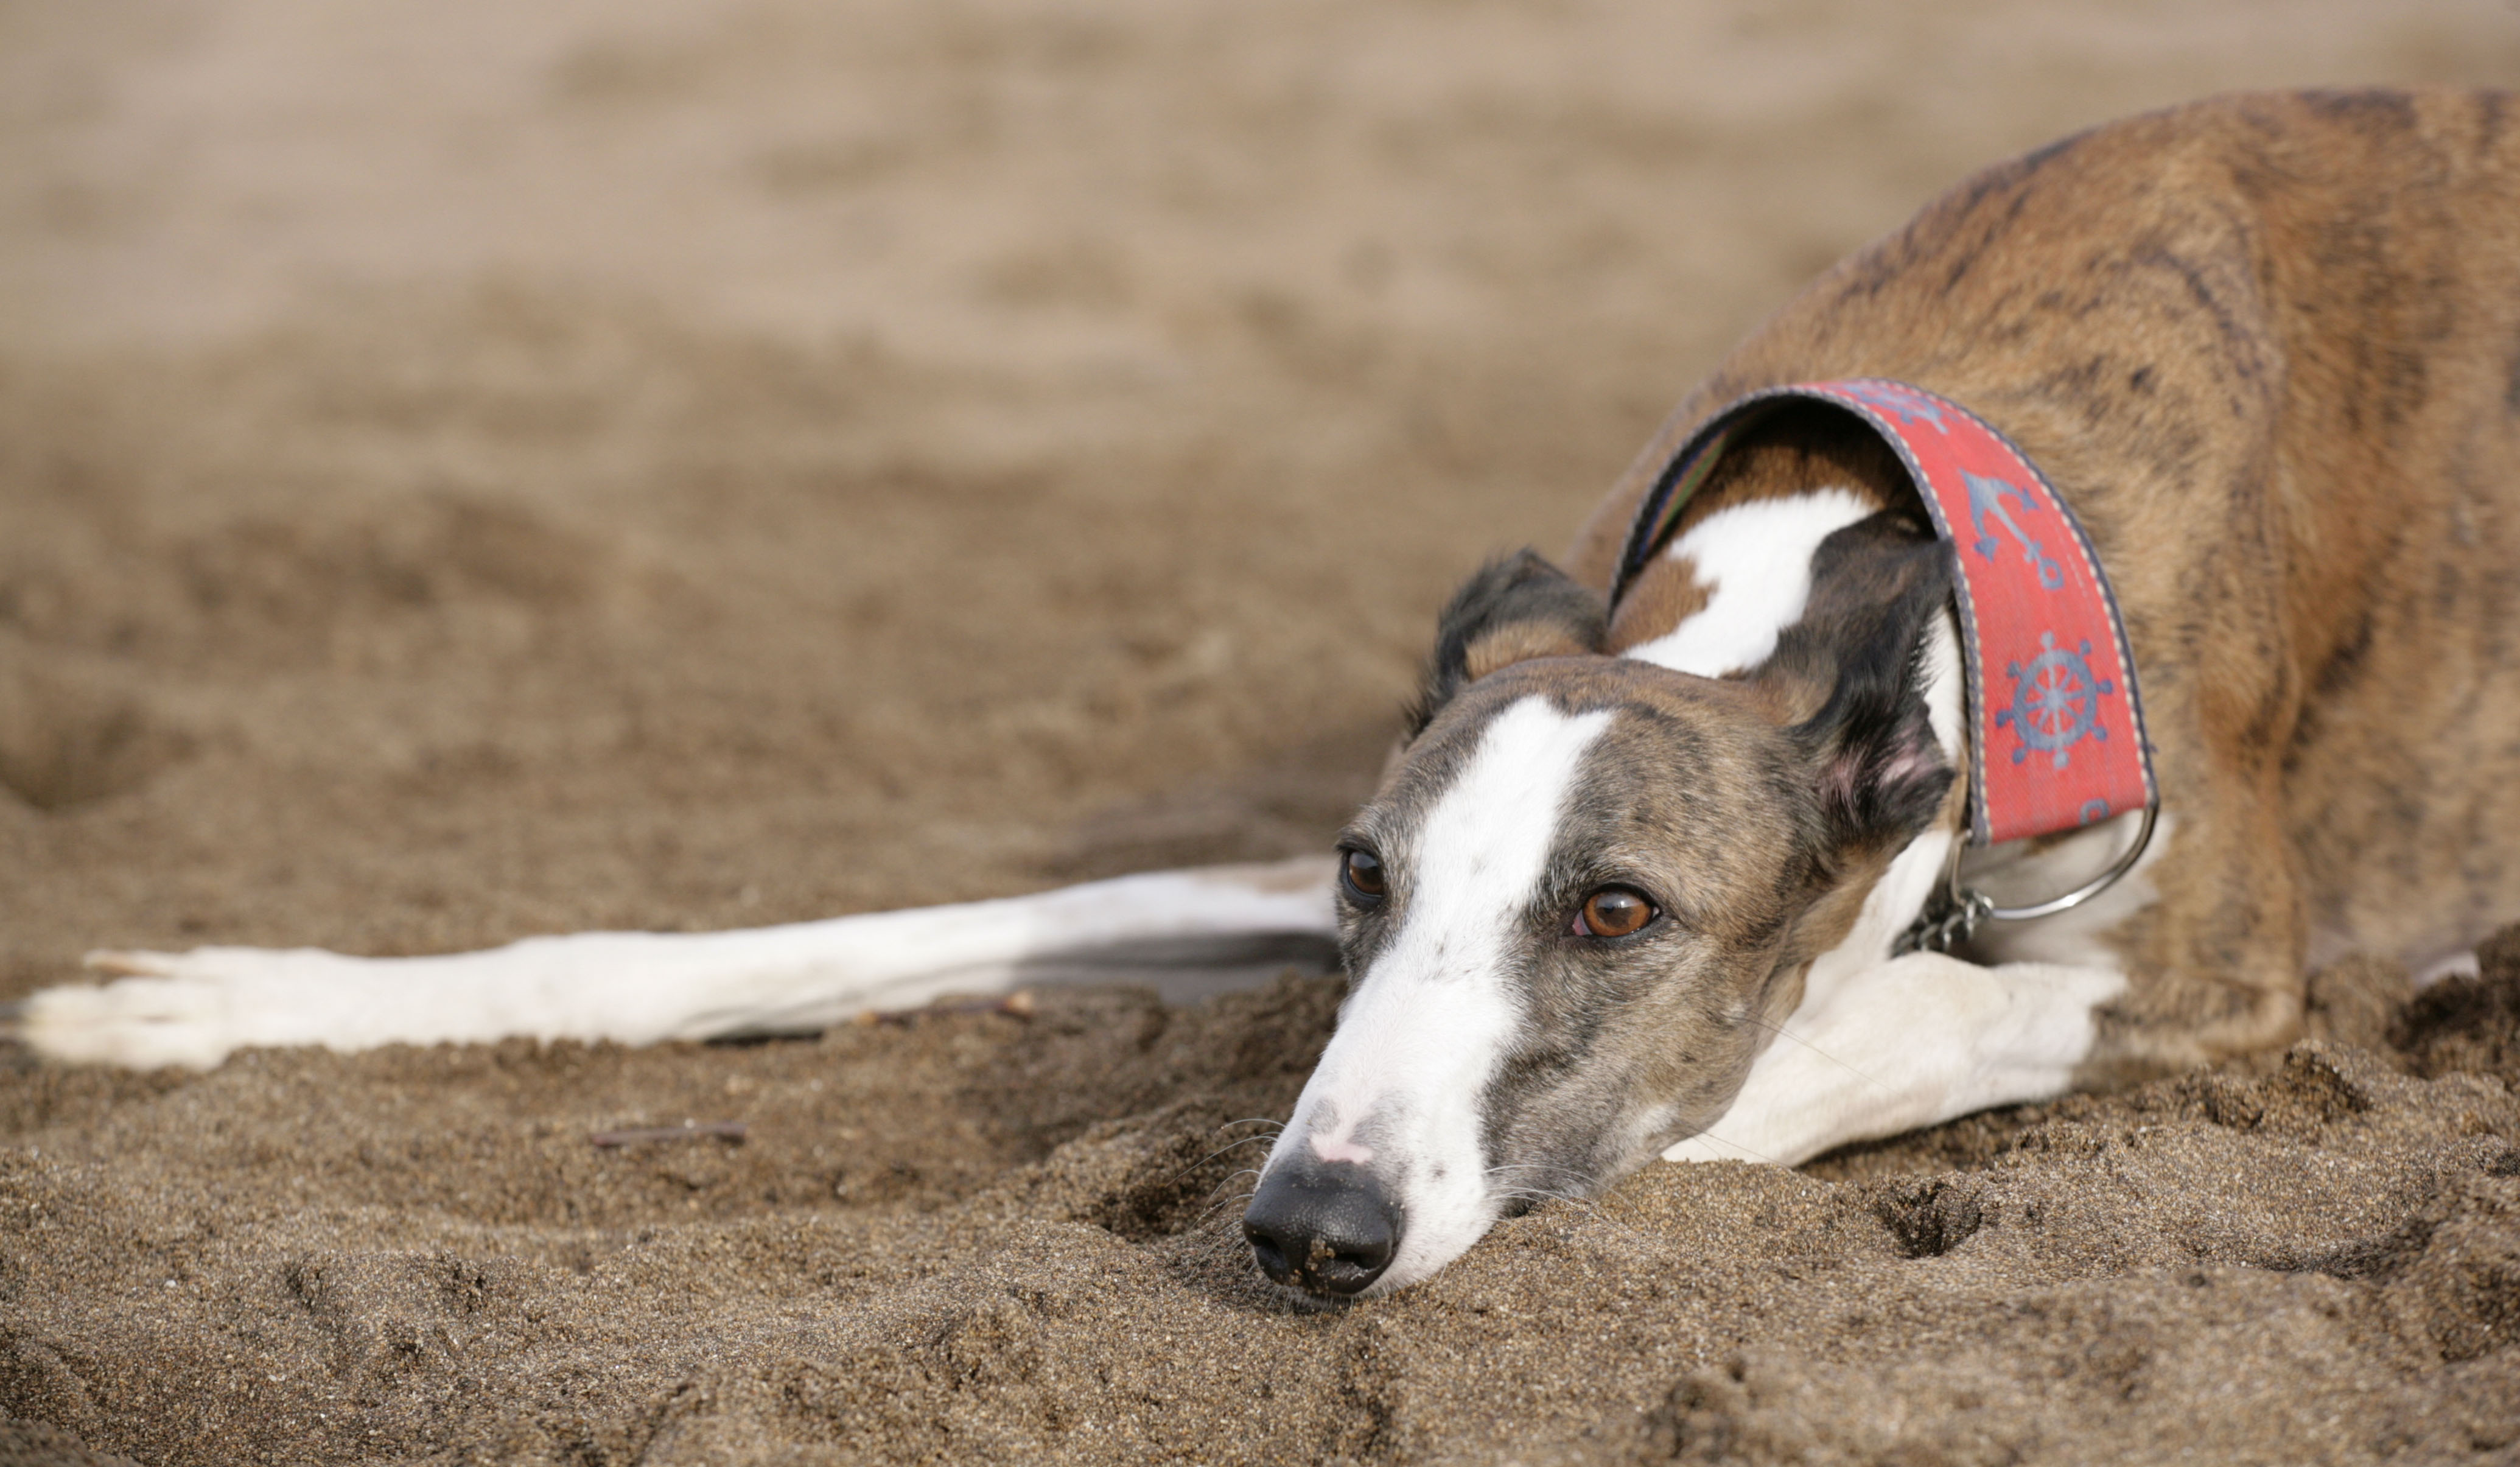 Greyhound Racing: Shameful brutality must end now